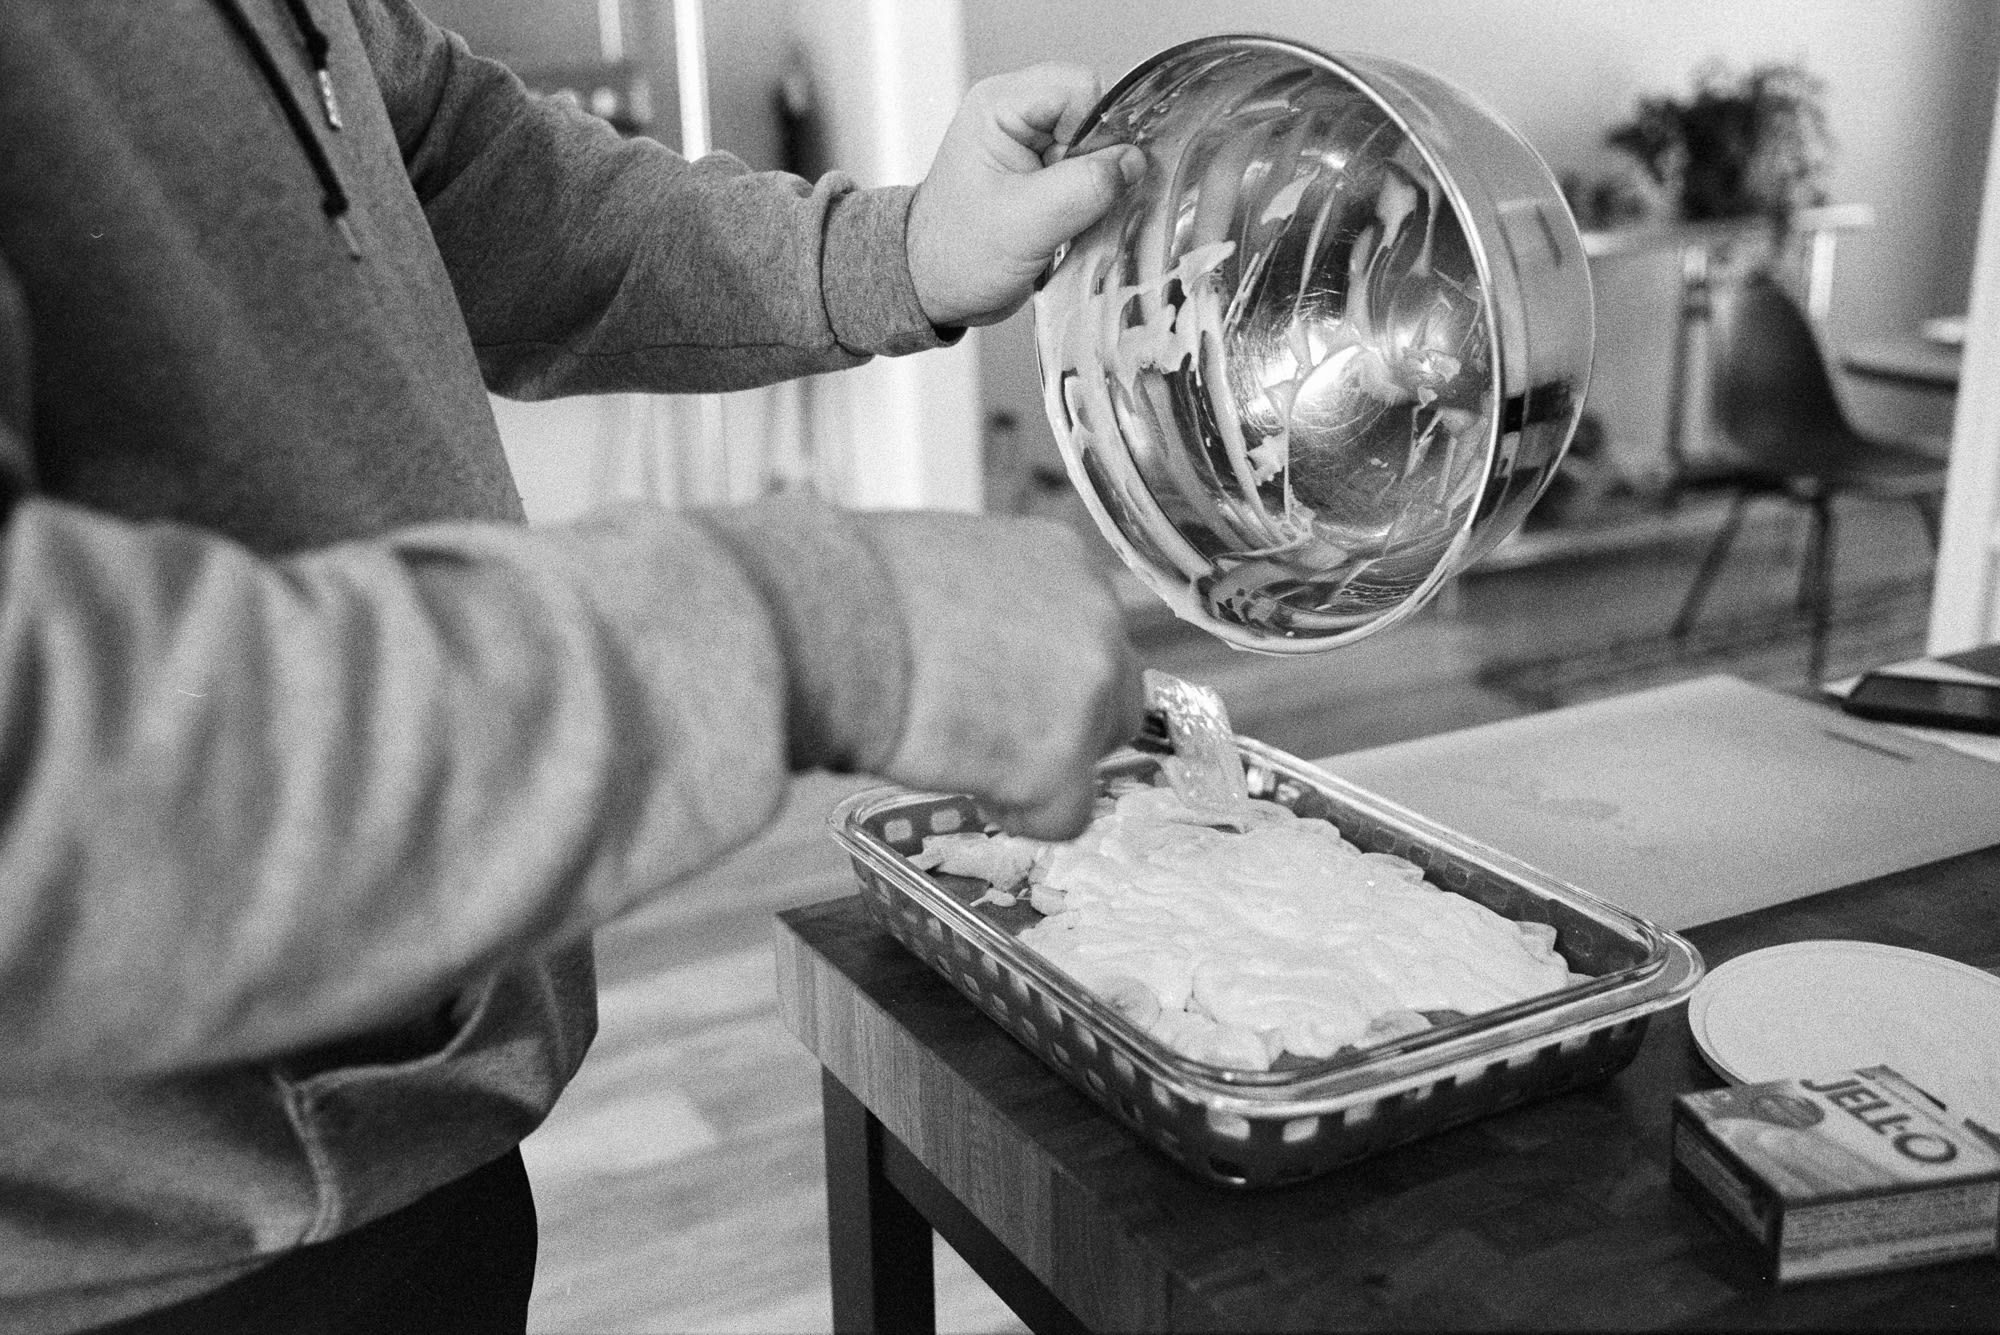 man scooping pudding from a bowl into dish